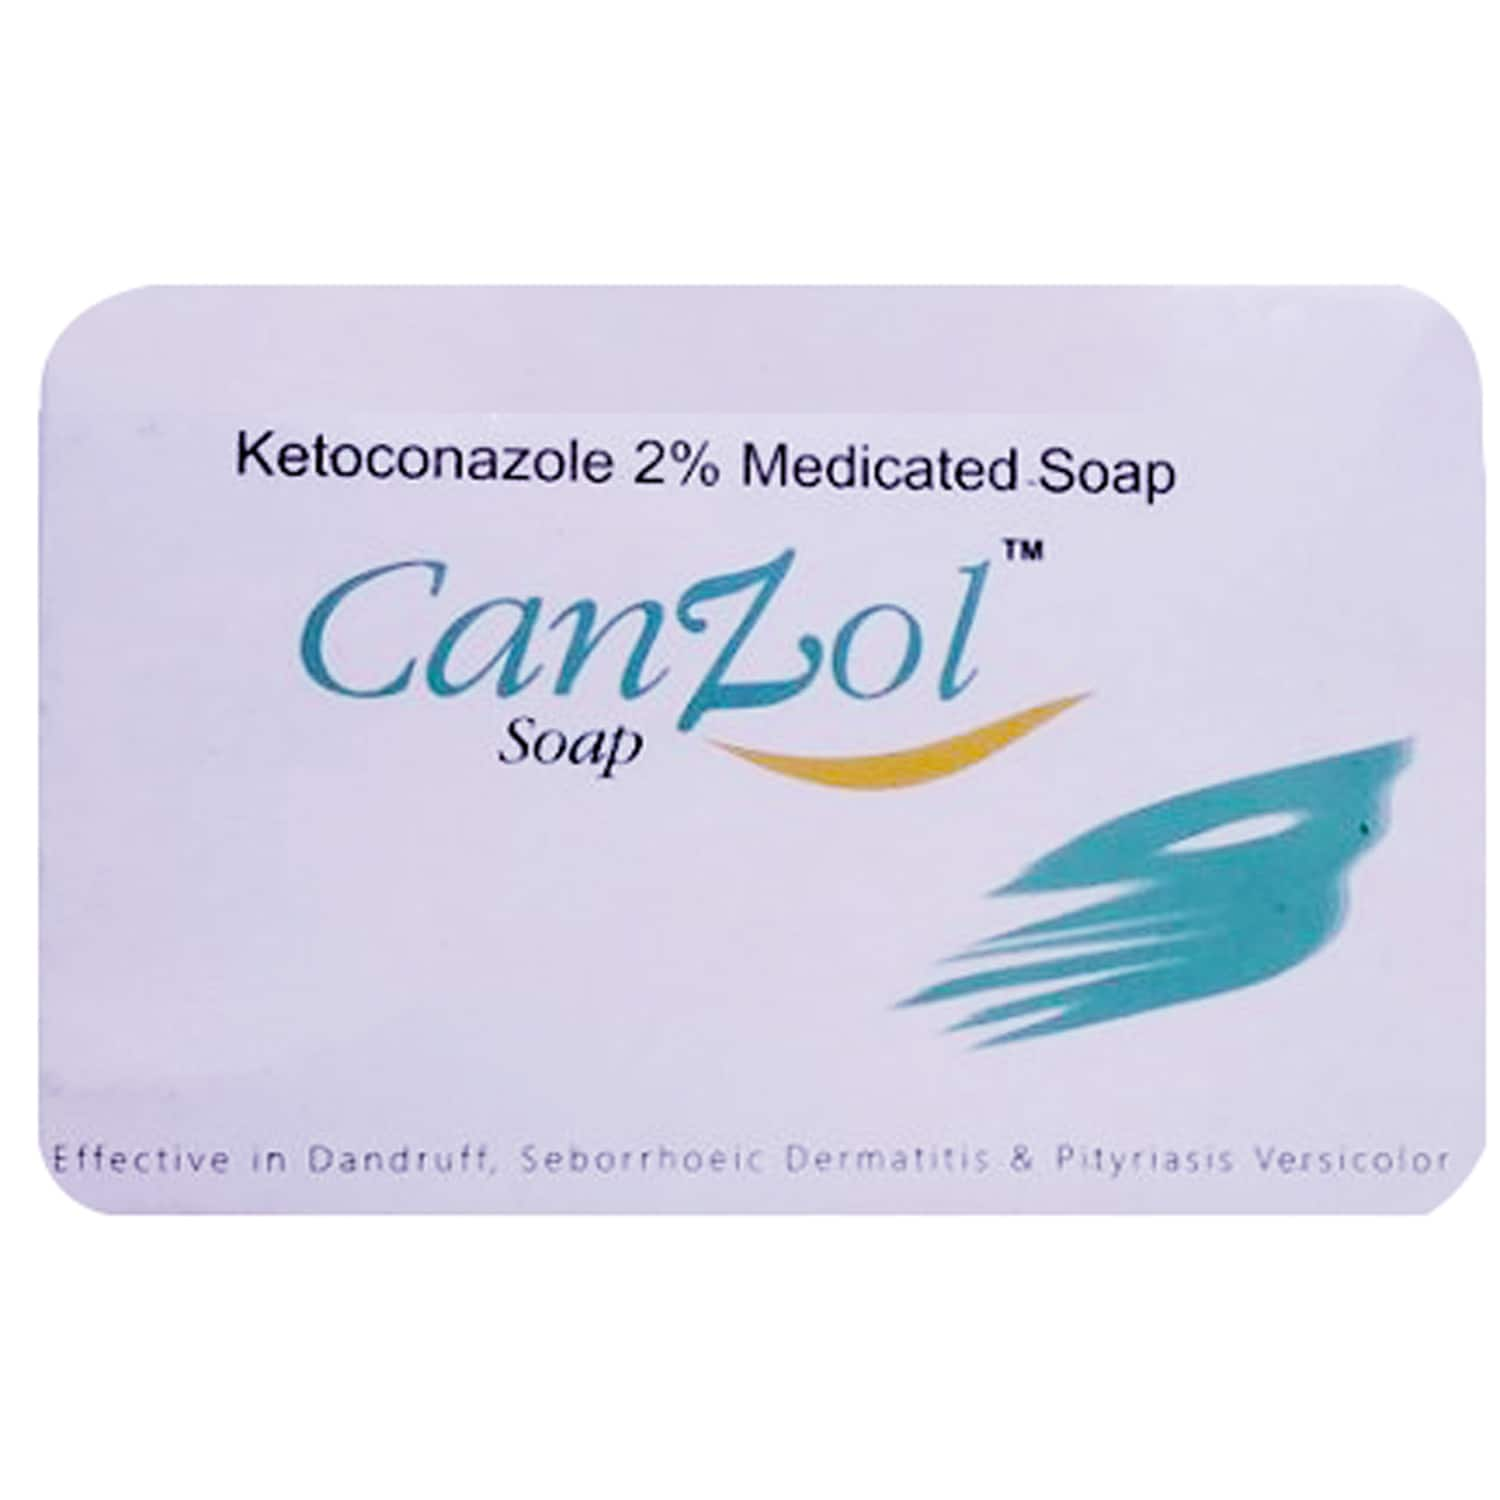 Canzol Soap, 75 gm